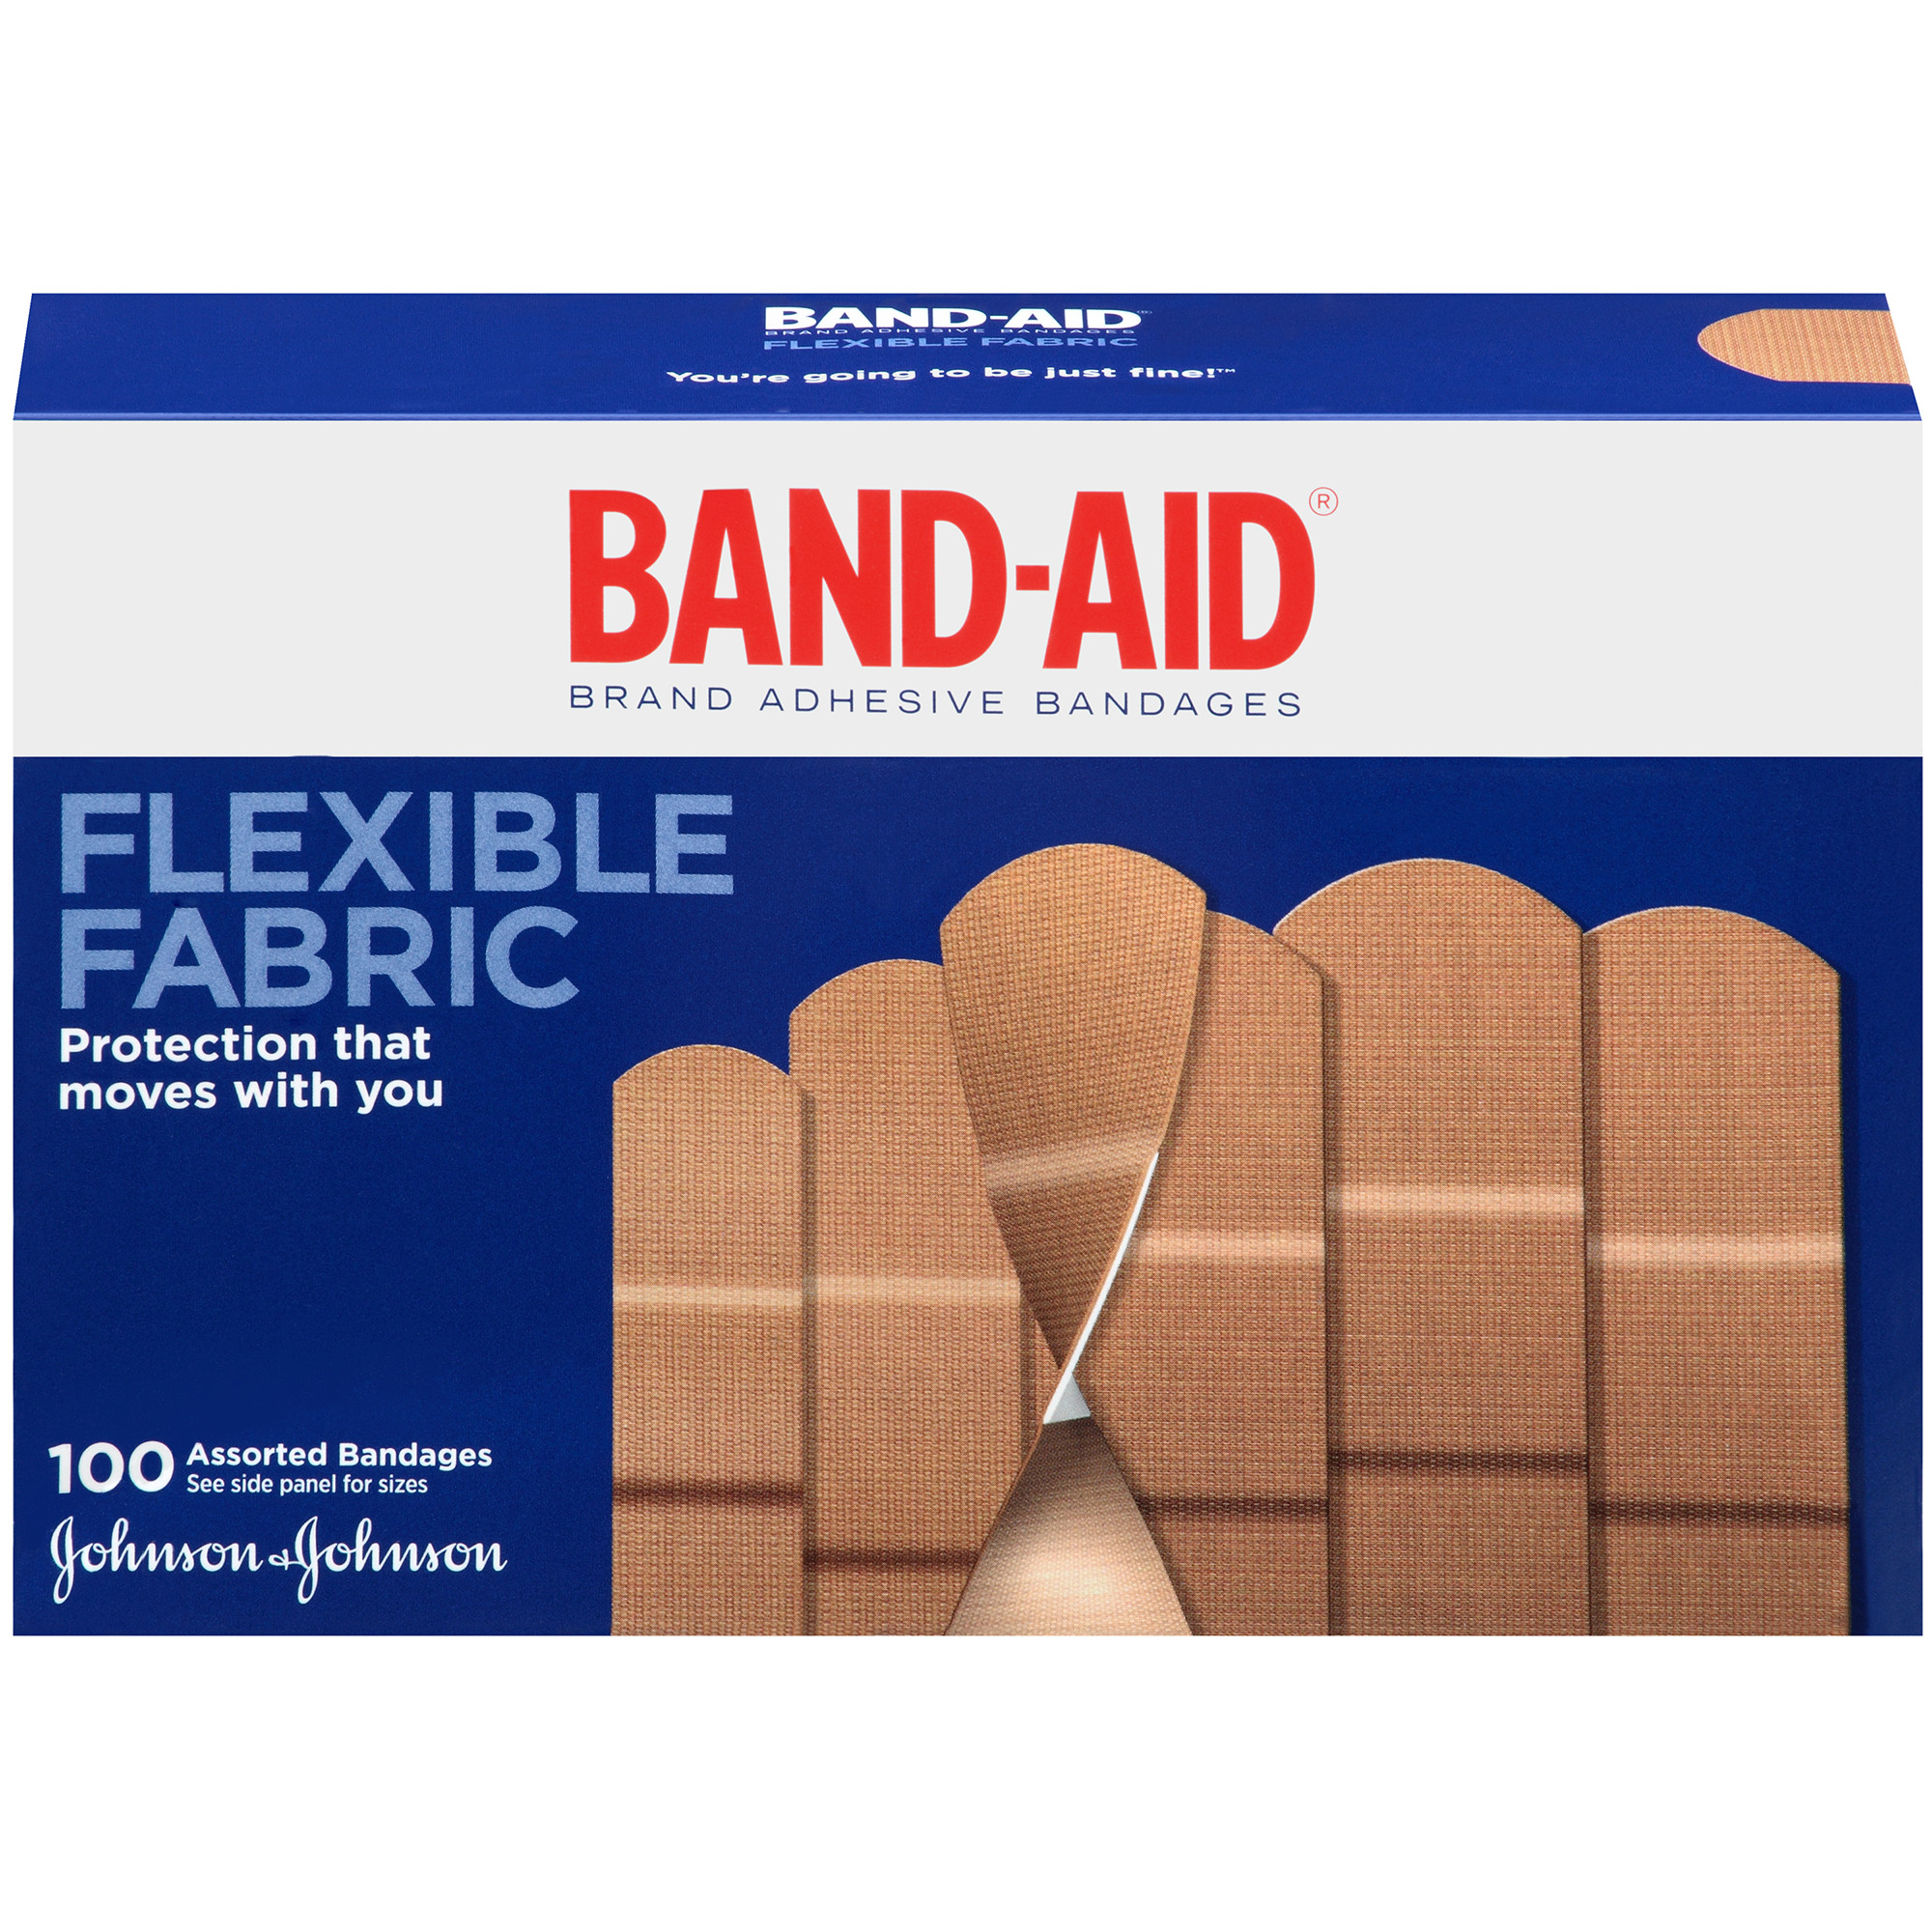 Band-Aid Flexible Fabric Assorted Bandages, 100 count